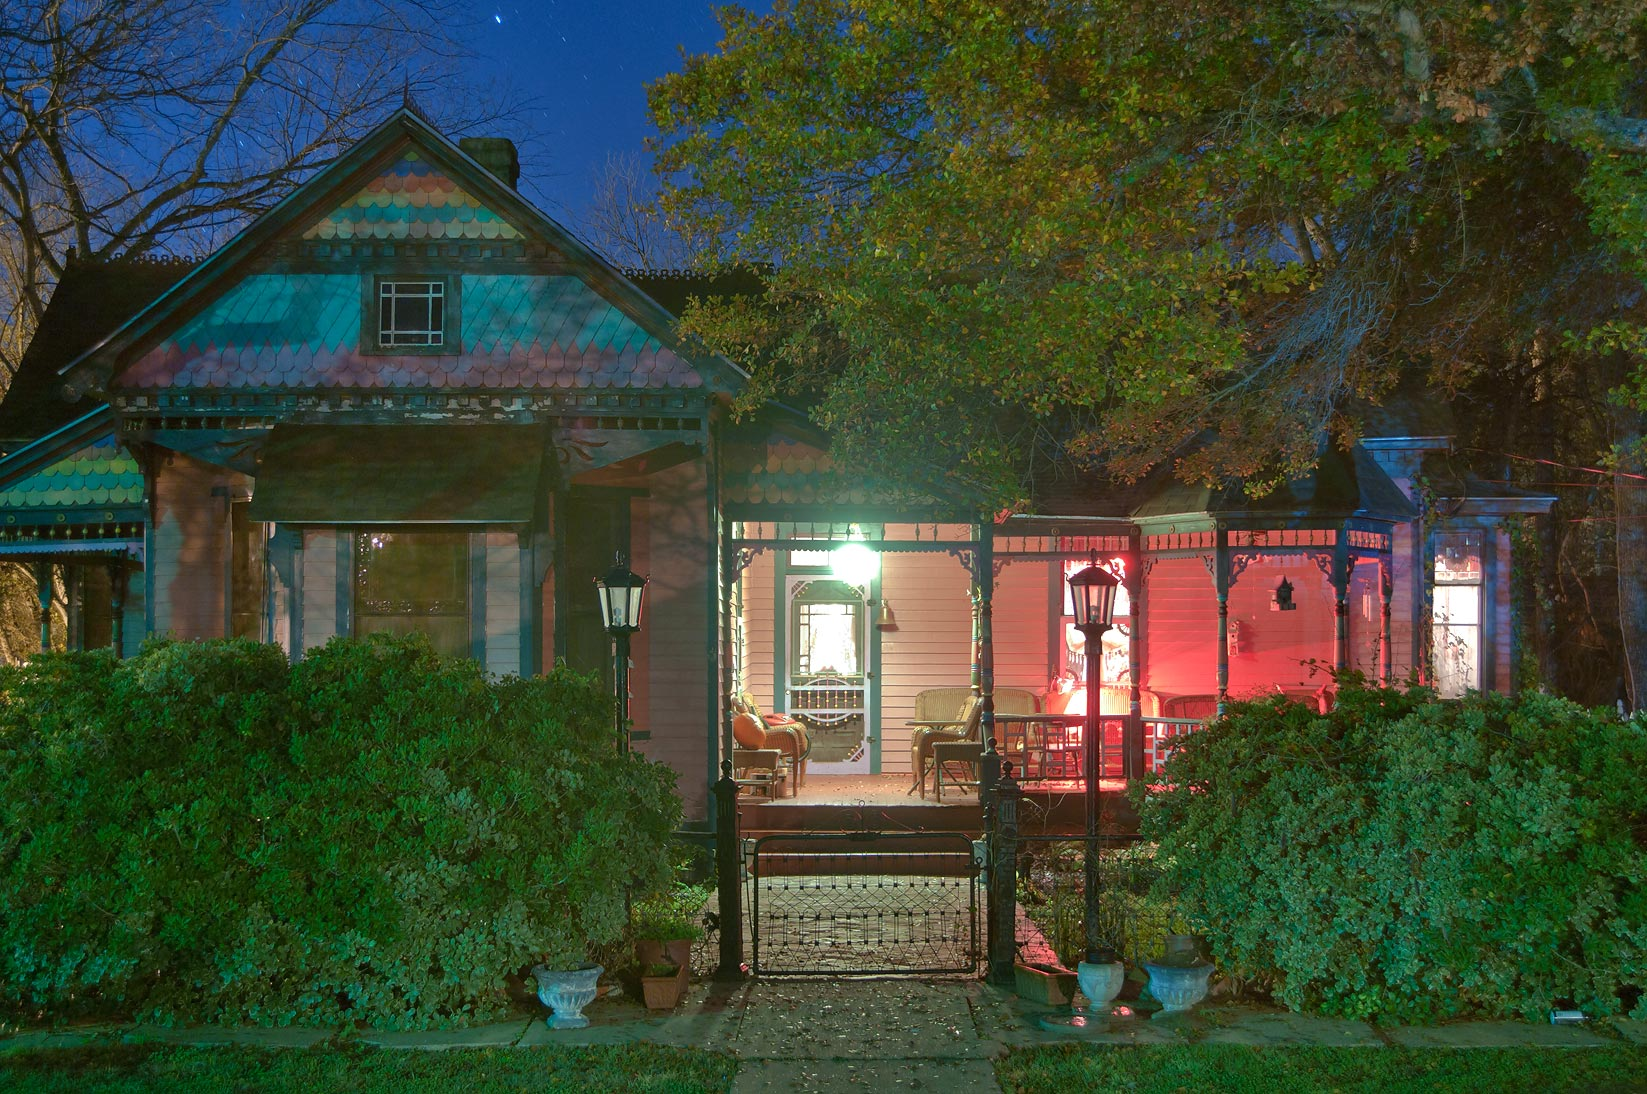 Fancher-Meredith-Mercer-Drennan-Cobb House (1885...a corner of Pine St.. Calvert, Texas